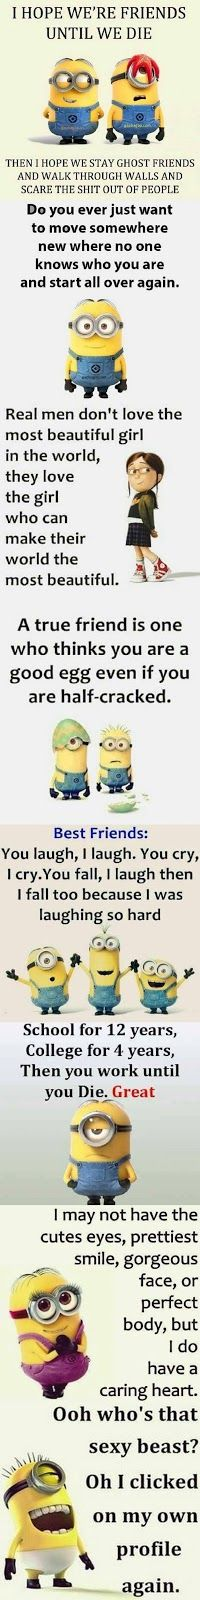 Top 8 Funny Memes By The #Minions